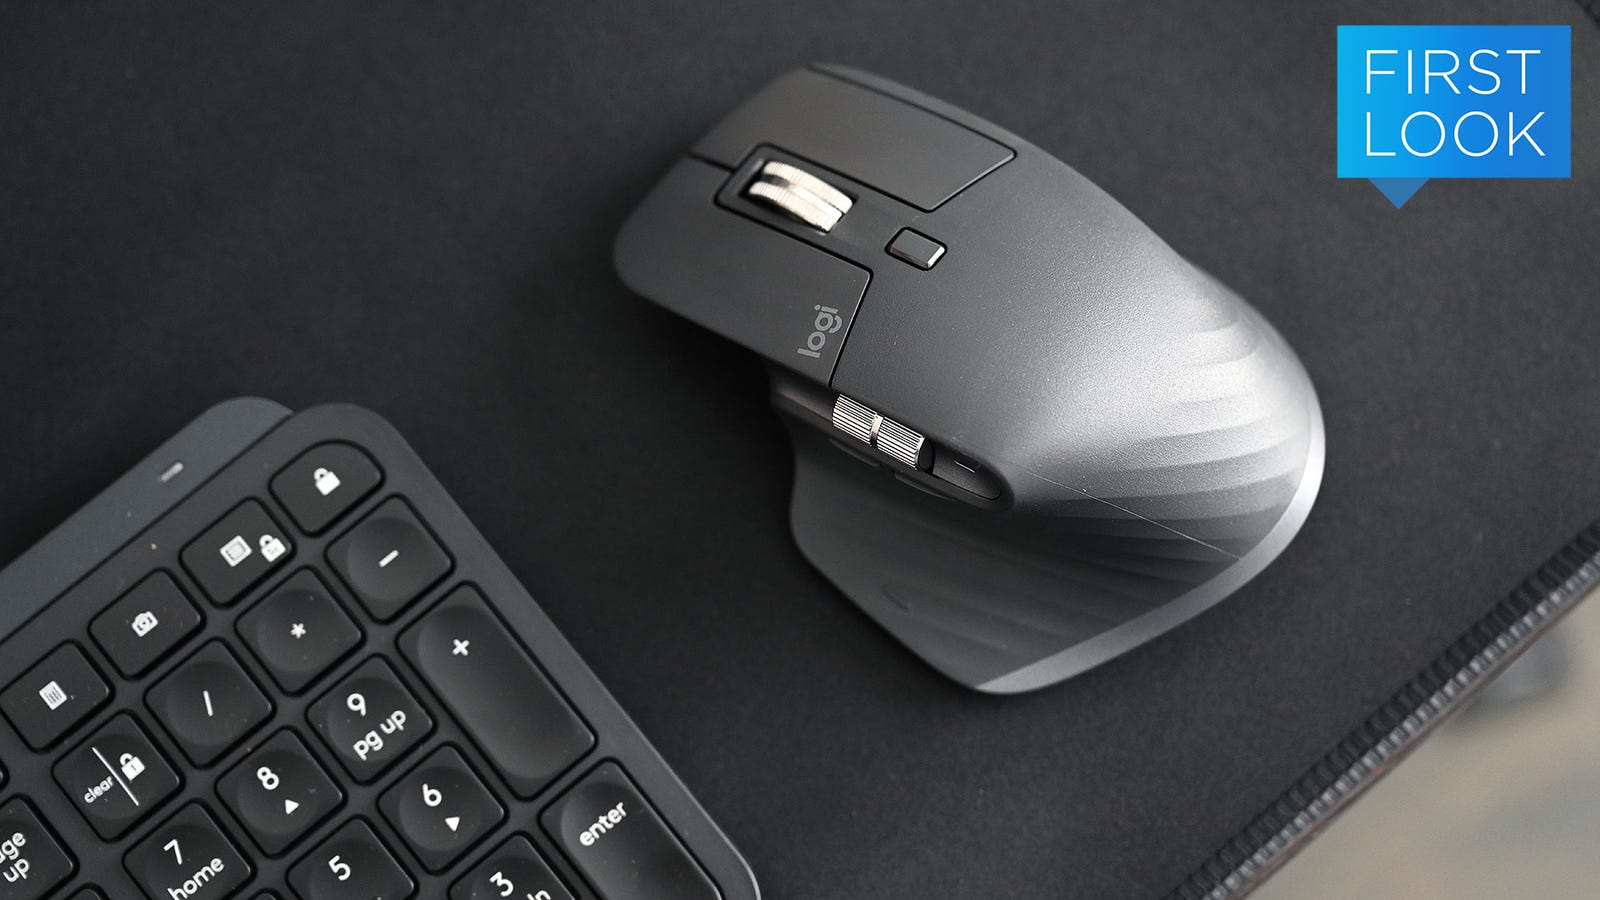 This New Logitech Mouse Has a Magnetic Wheel That Feels Like Magic